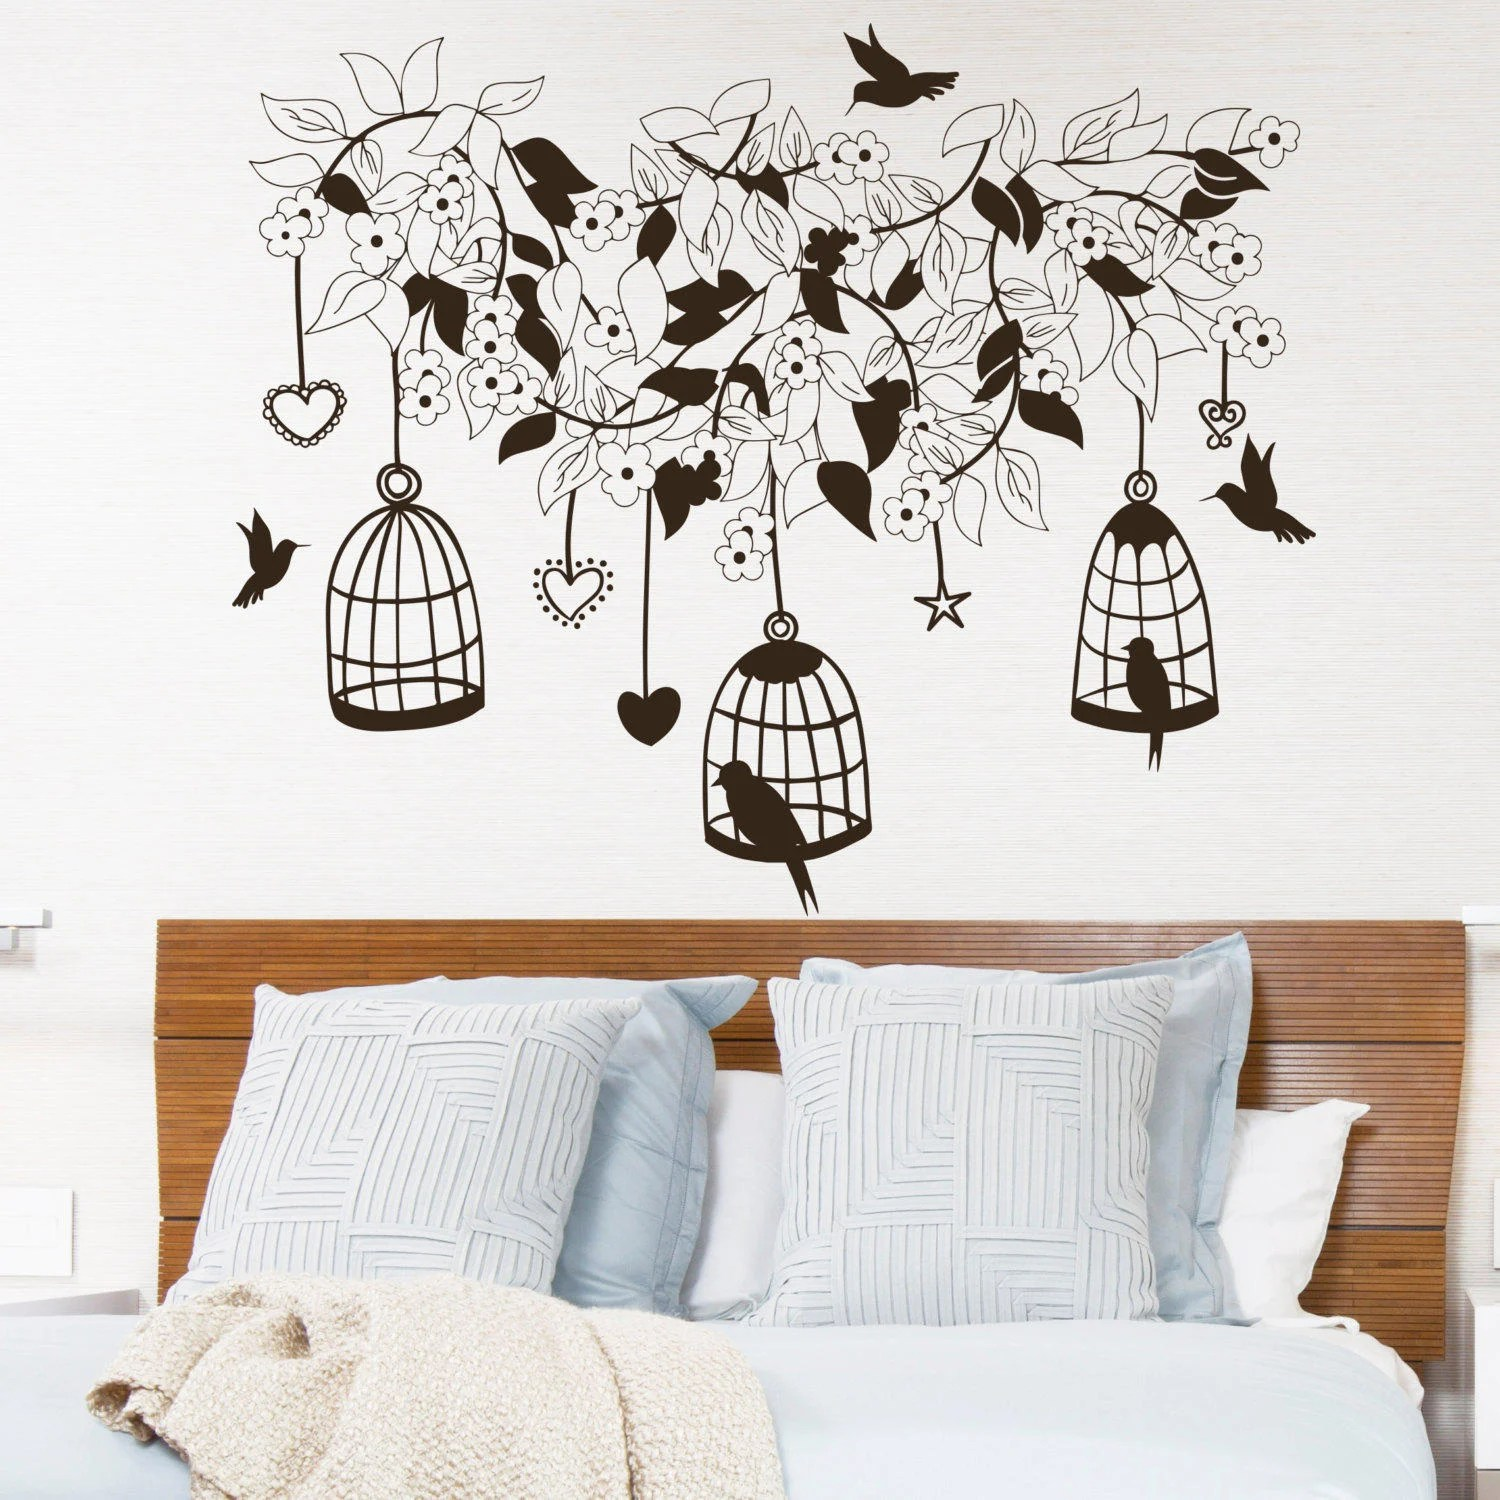 Bedroom Wall Art Trees Wall Decal Flowers Tree Birds In Cage From Decalsfromdavid On